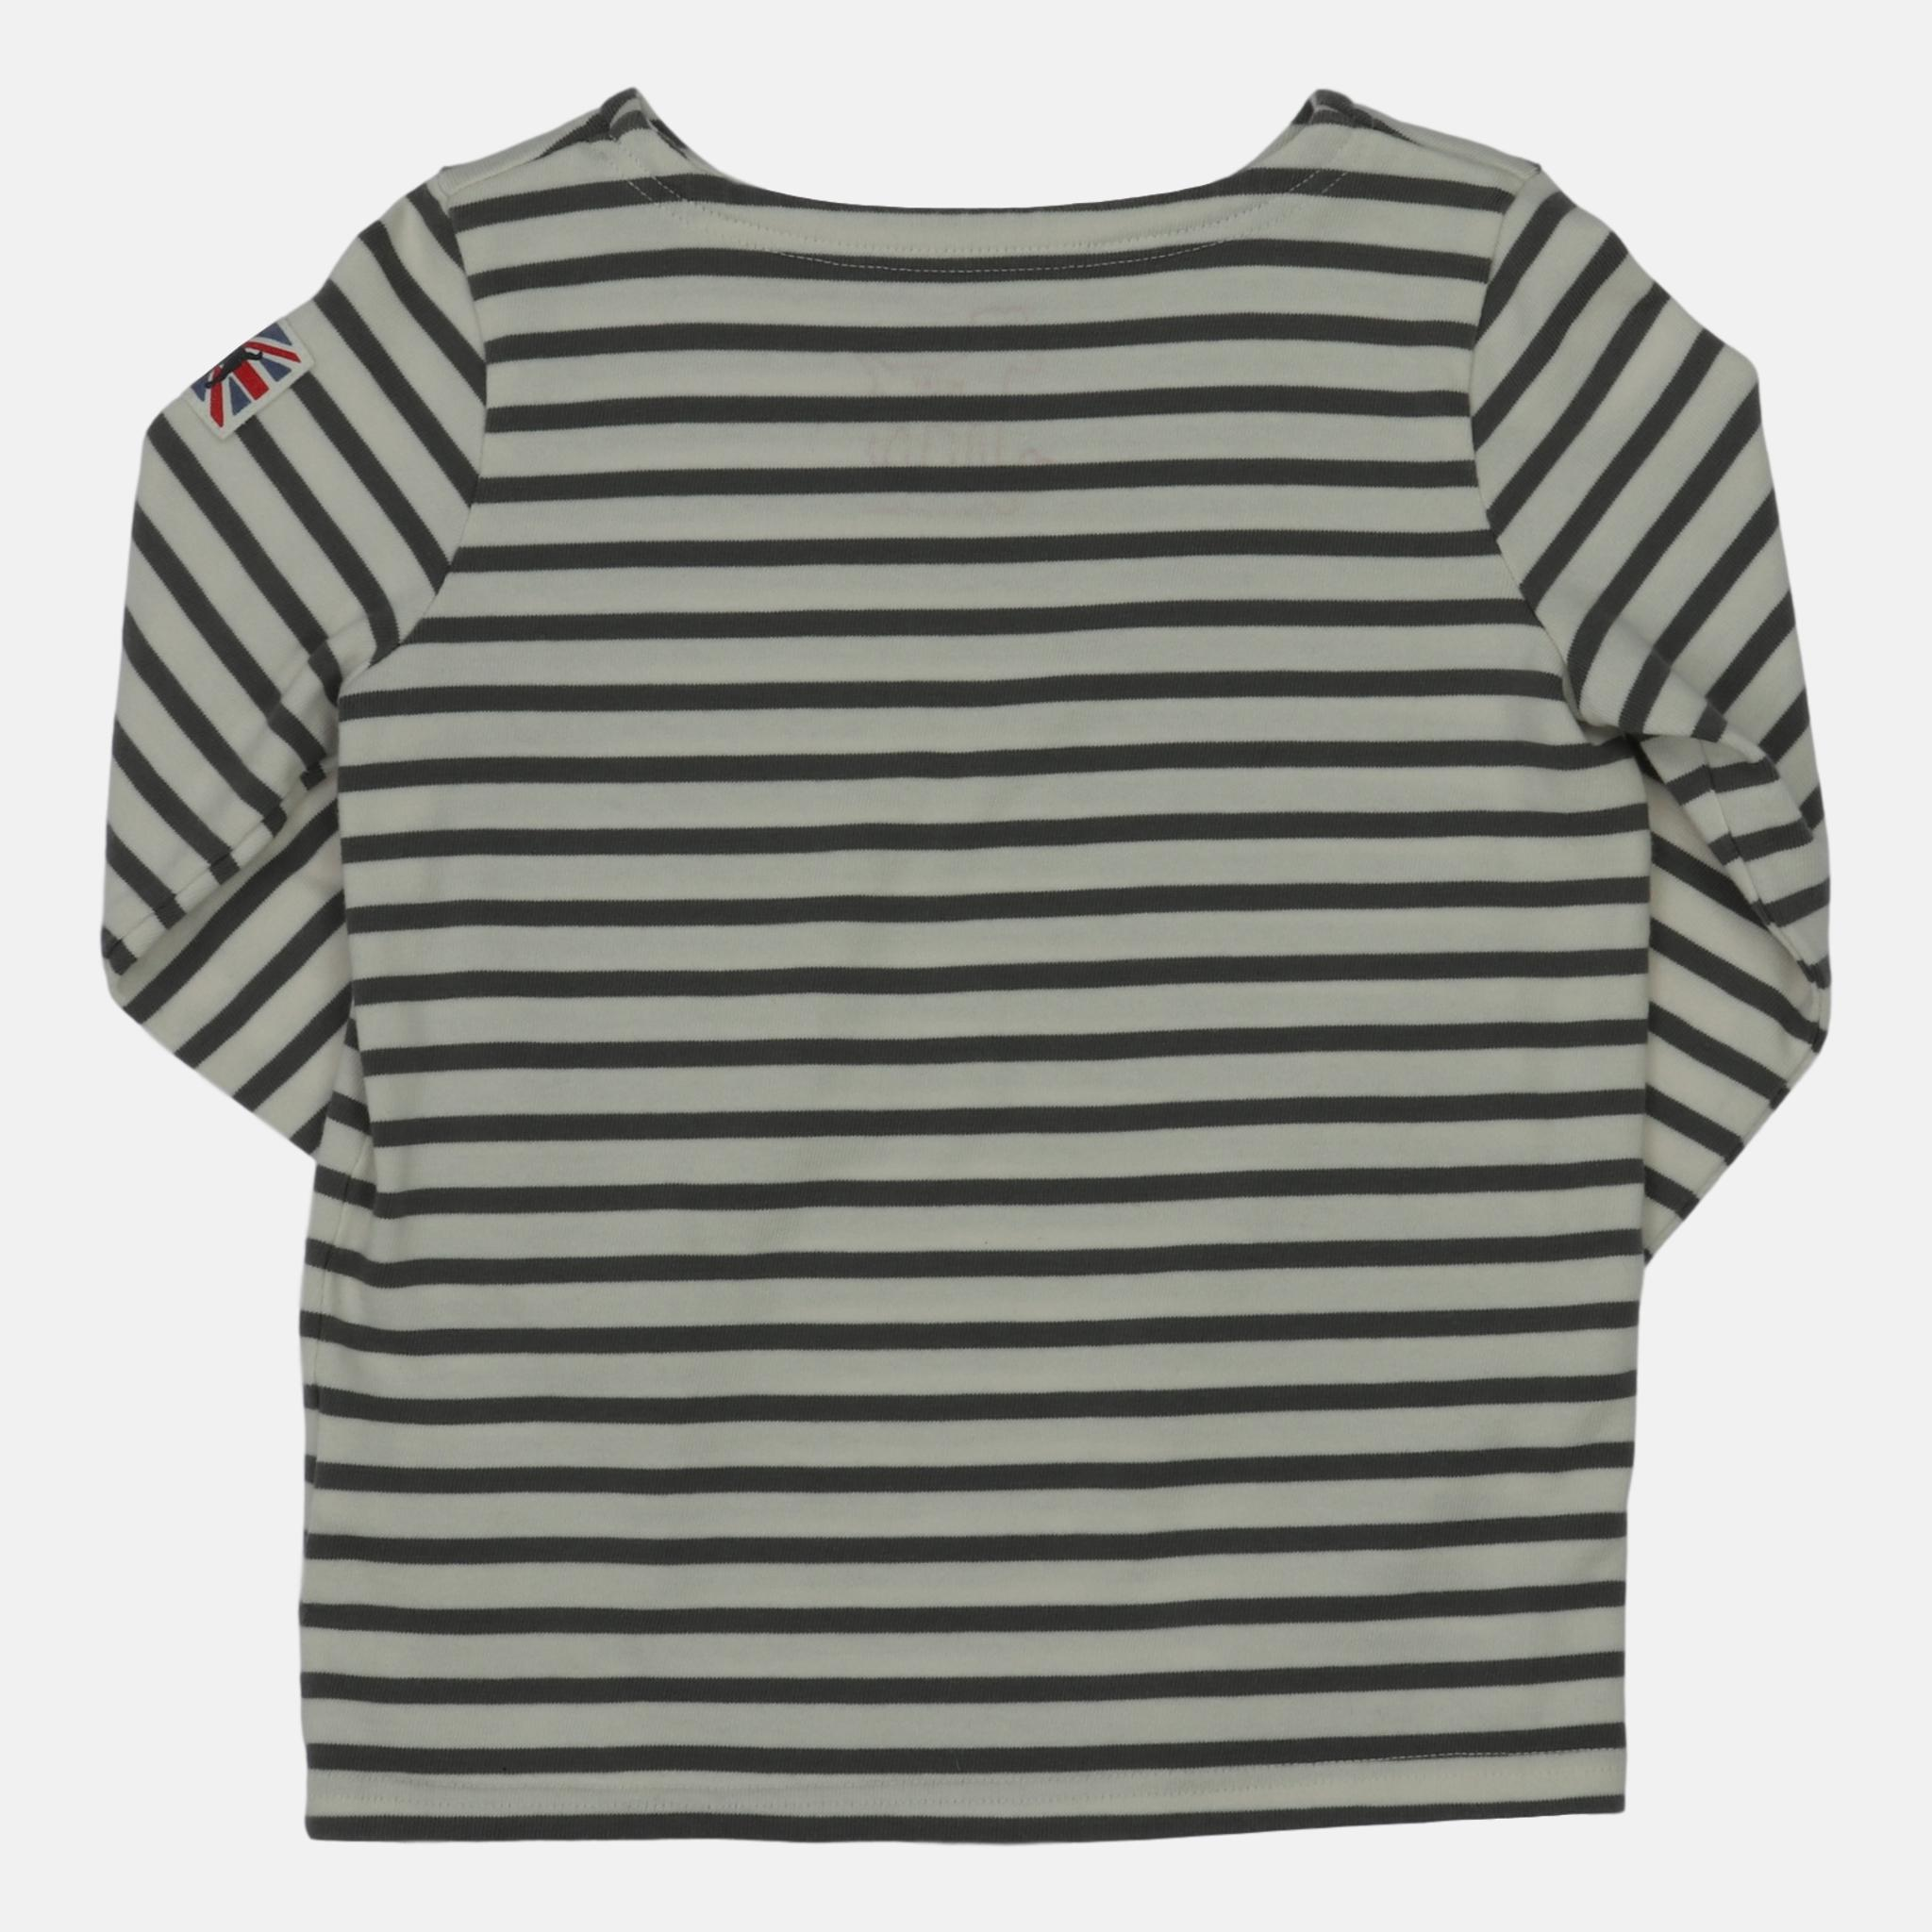 Long Sleeve T-Shirt, 6-7 Years